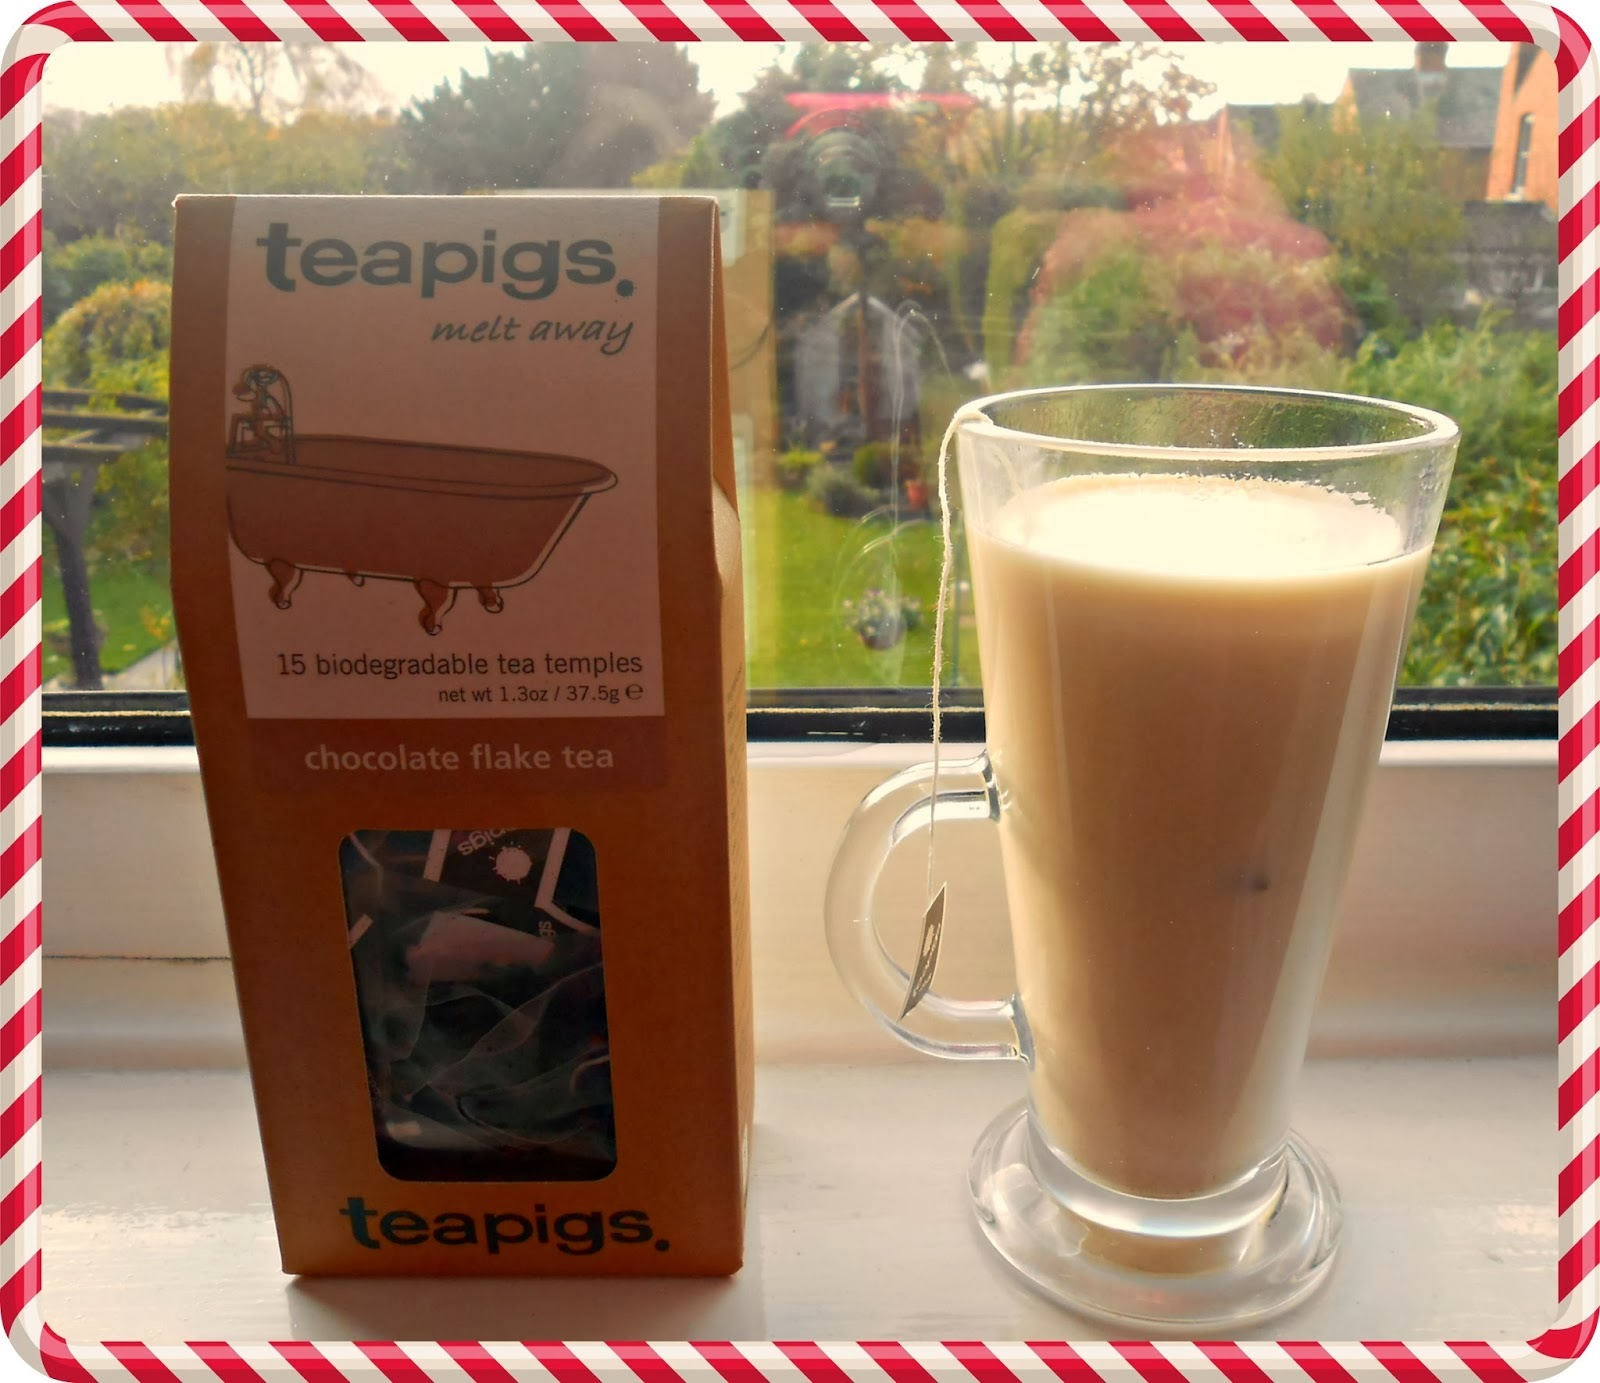 Teapigs Chocolate Flake Tea Temples Cream